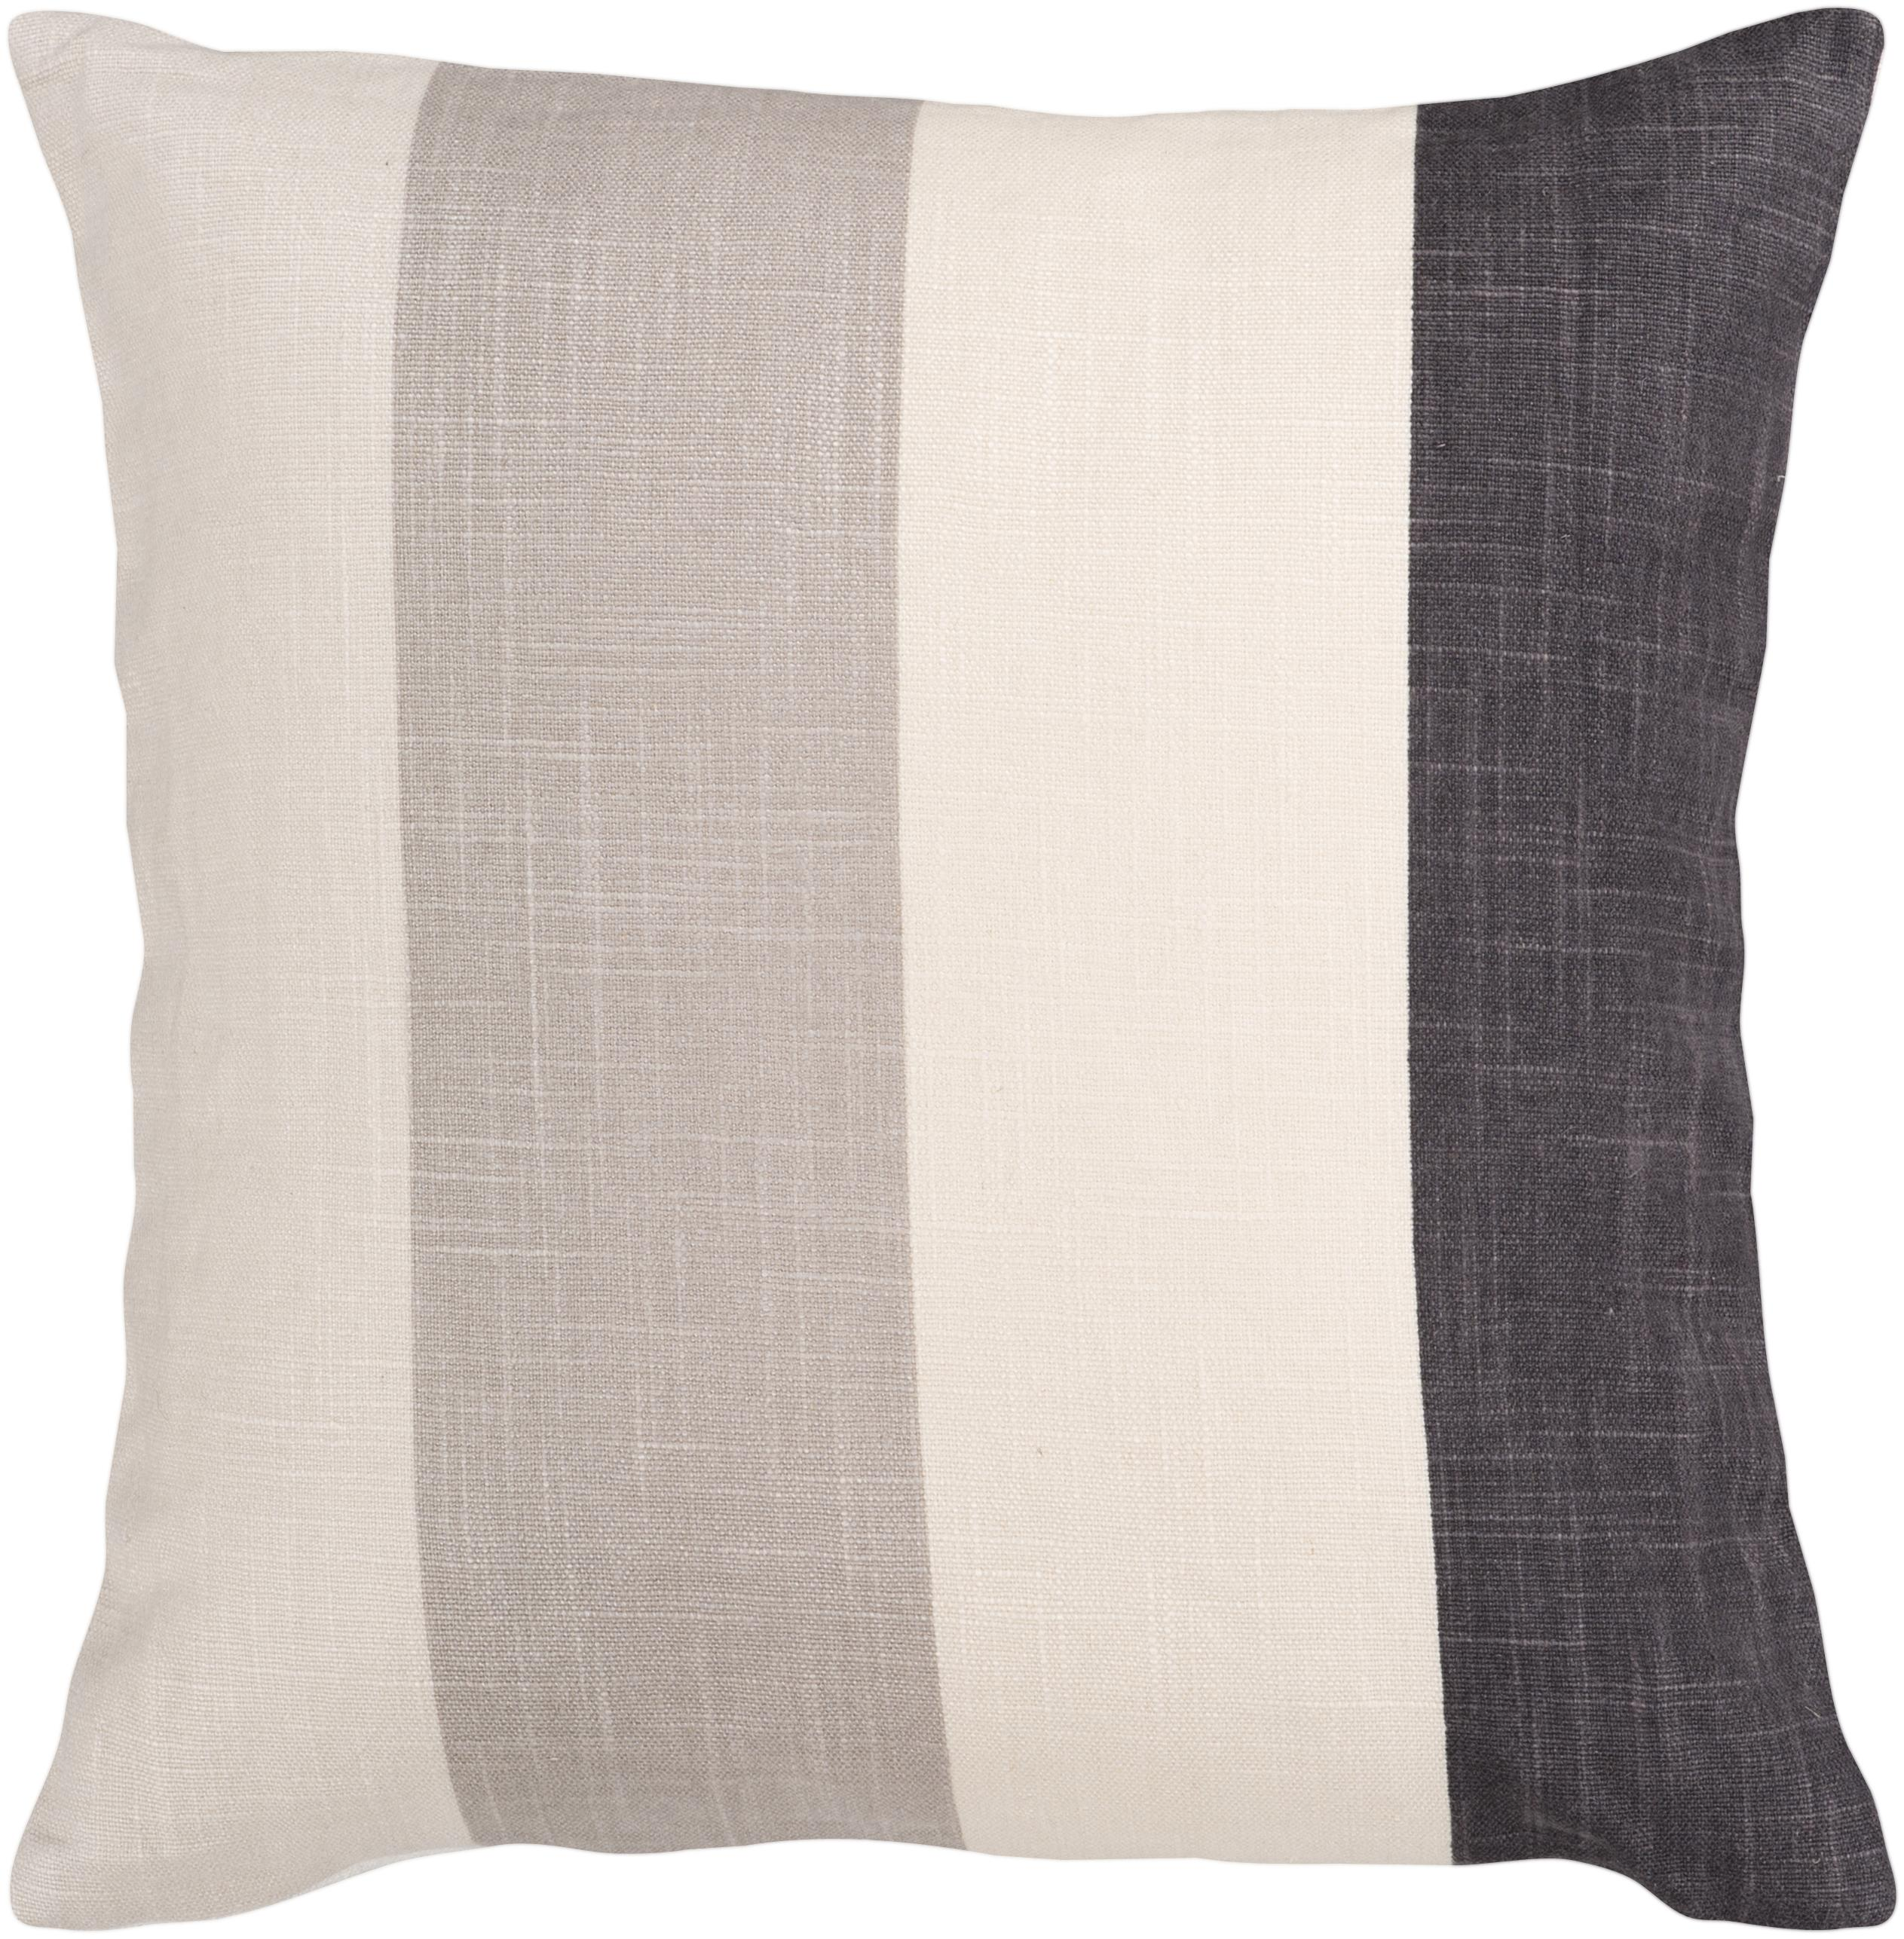 "Surya Pillows 18"" x 18"" Pillow - Item Number: JS011-1818P"